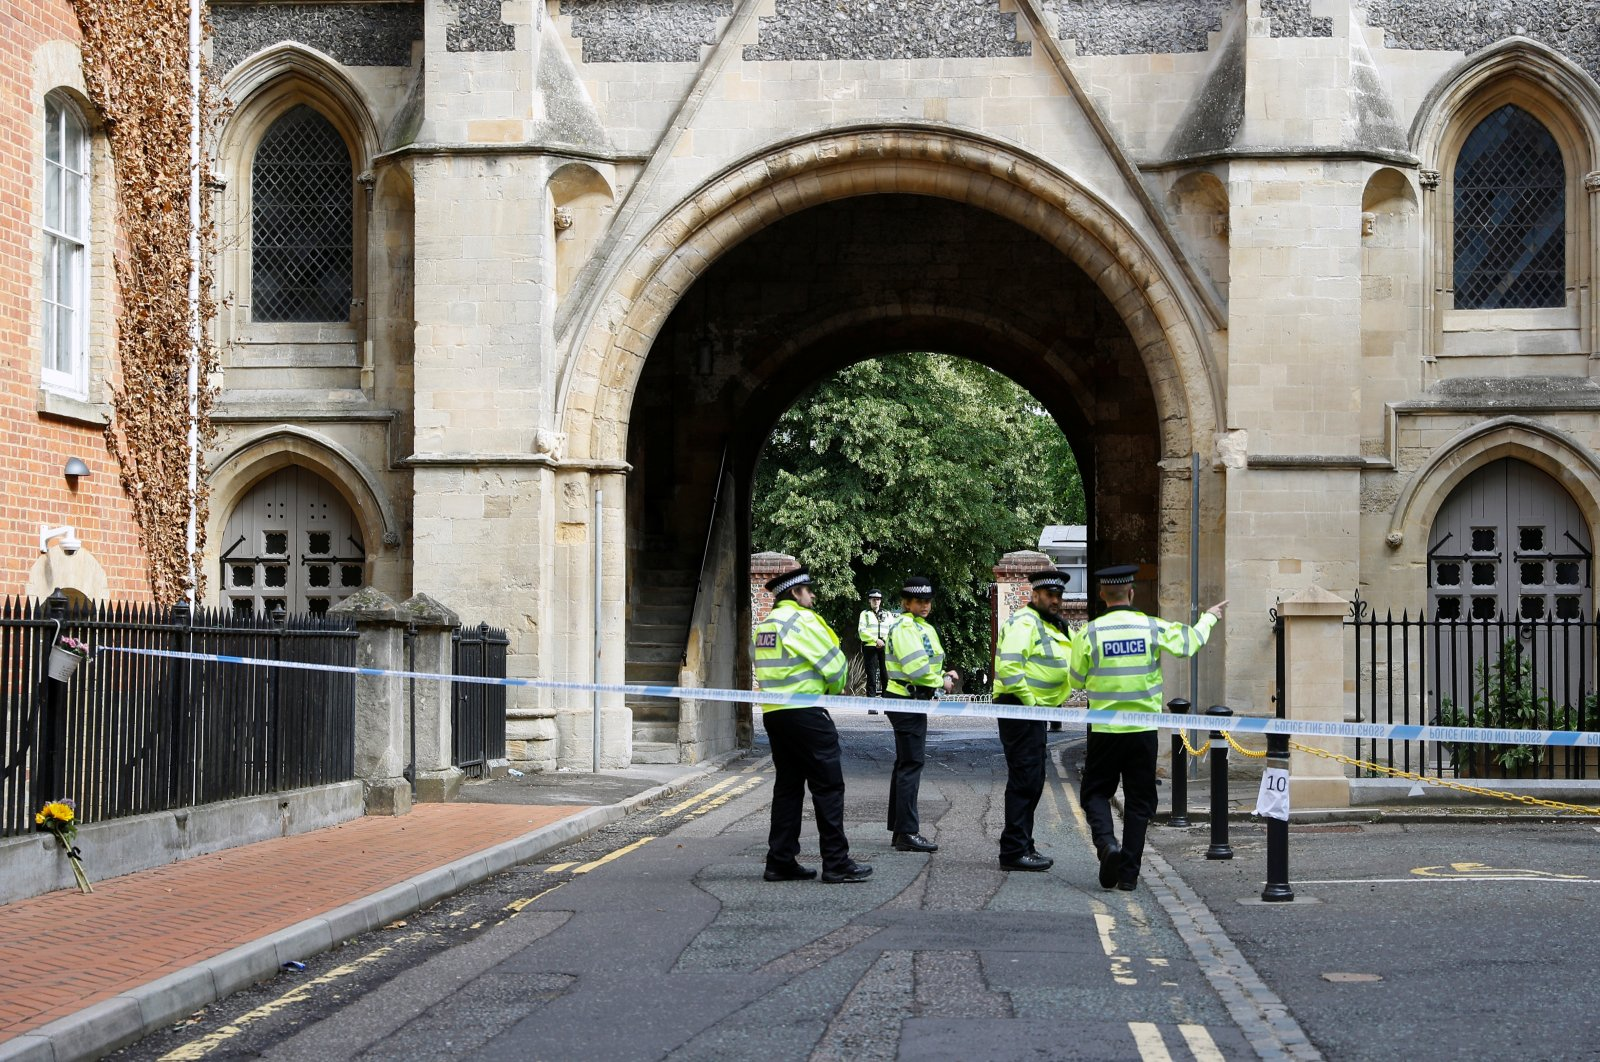 Police officers stand behind the cordon at the scene of multiple stabbings, Reading, England, June 21, 2020. (Reuters Photo)